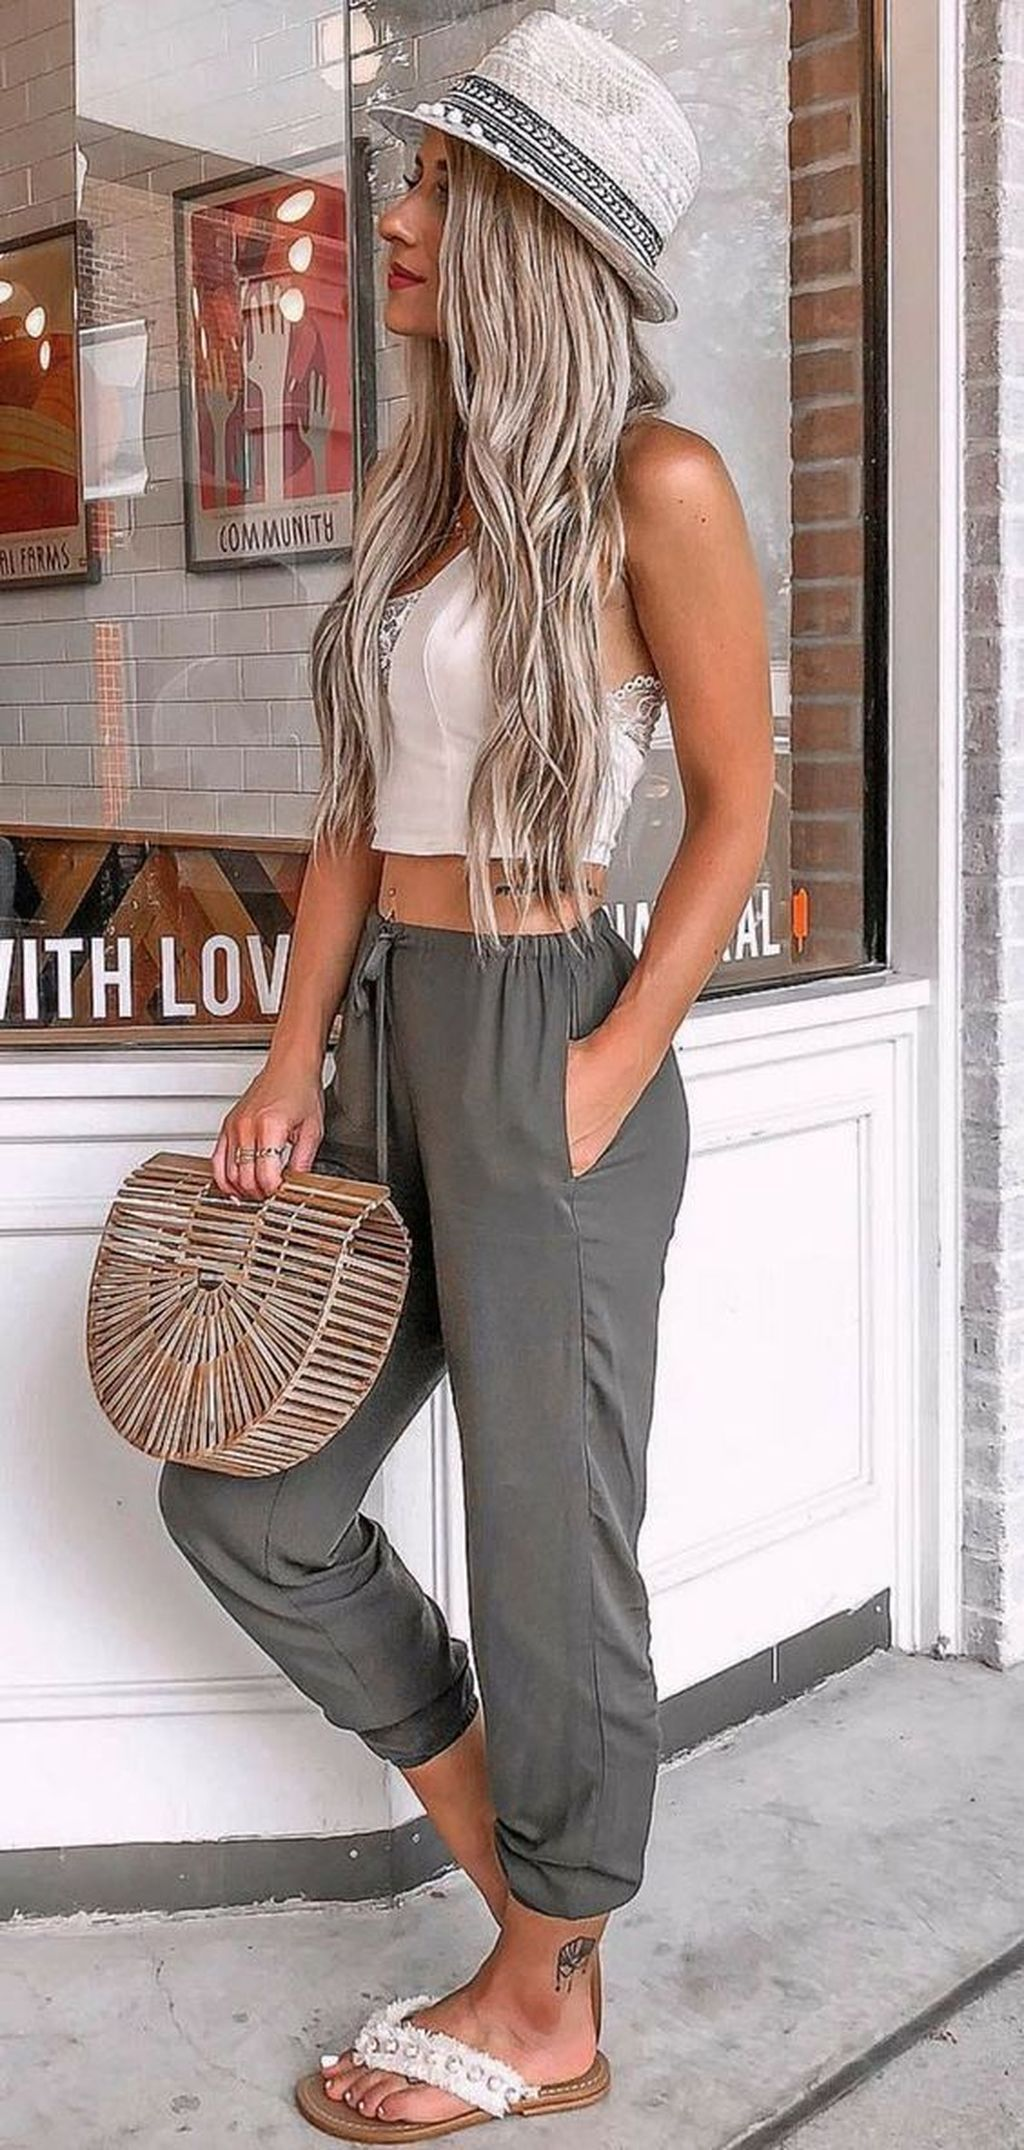 Stylish 40 Chic Women Outfits Ideas For You To Enjoy Summer Break Vacations    Source by gloofashionideas #summer outfits women 20s